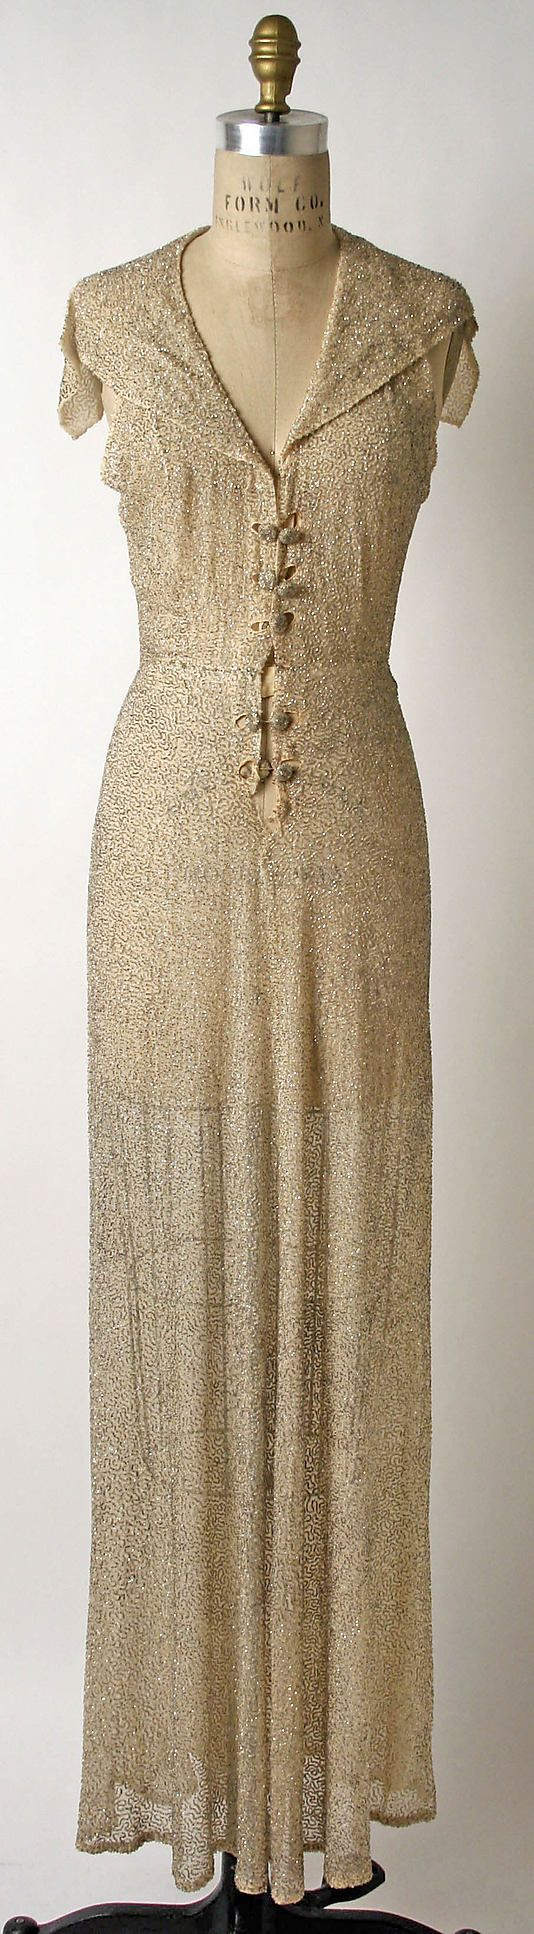 Evening dress Sophie Gimbel  Department Store: Made by Saks Fifth Avenue  Date: ca. 1936 Culture: American Medium: silk, crystal beads Accession Number: C.I.46.16.9